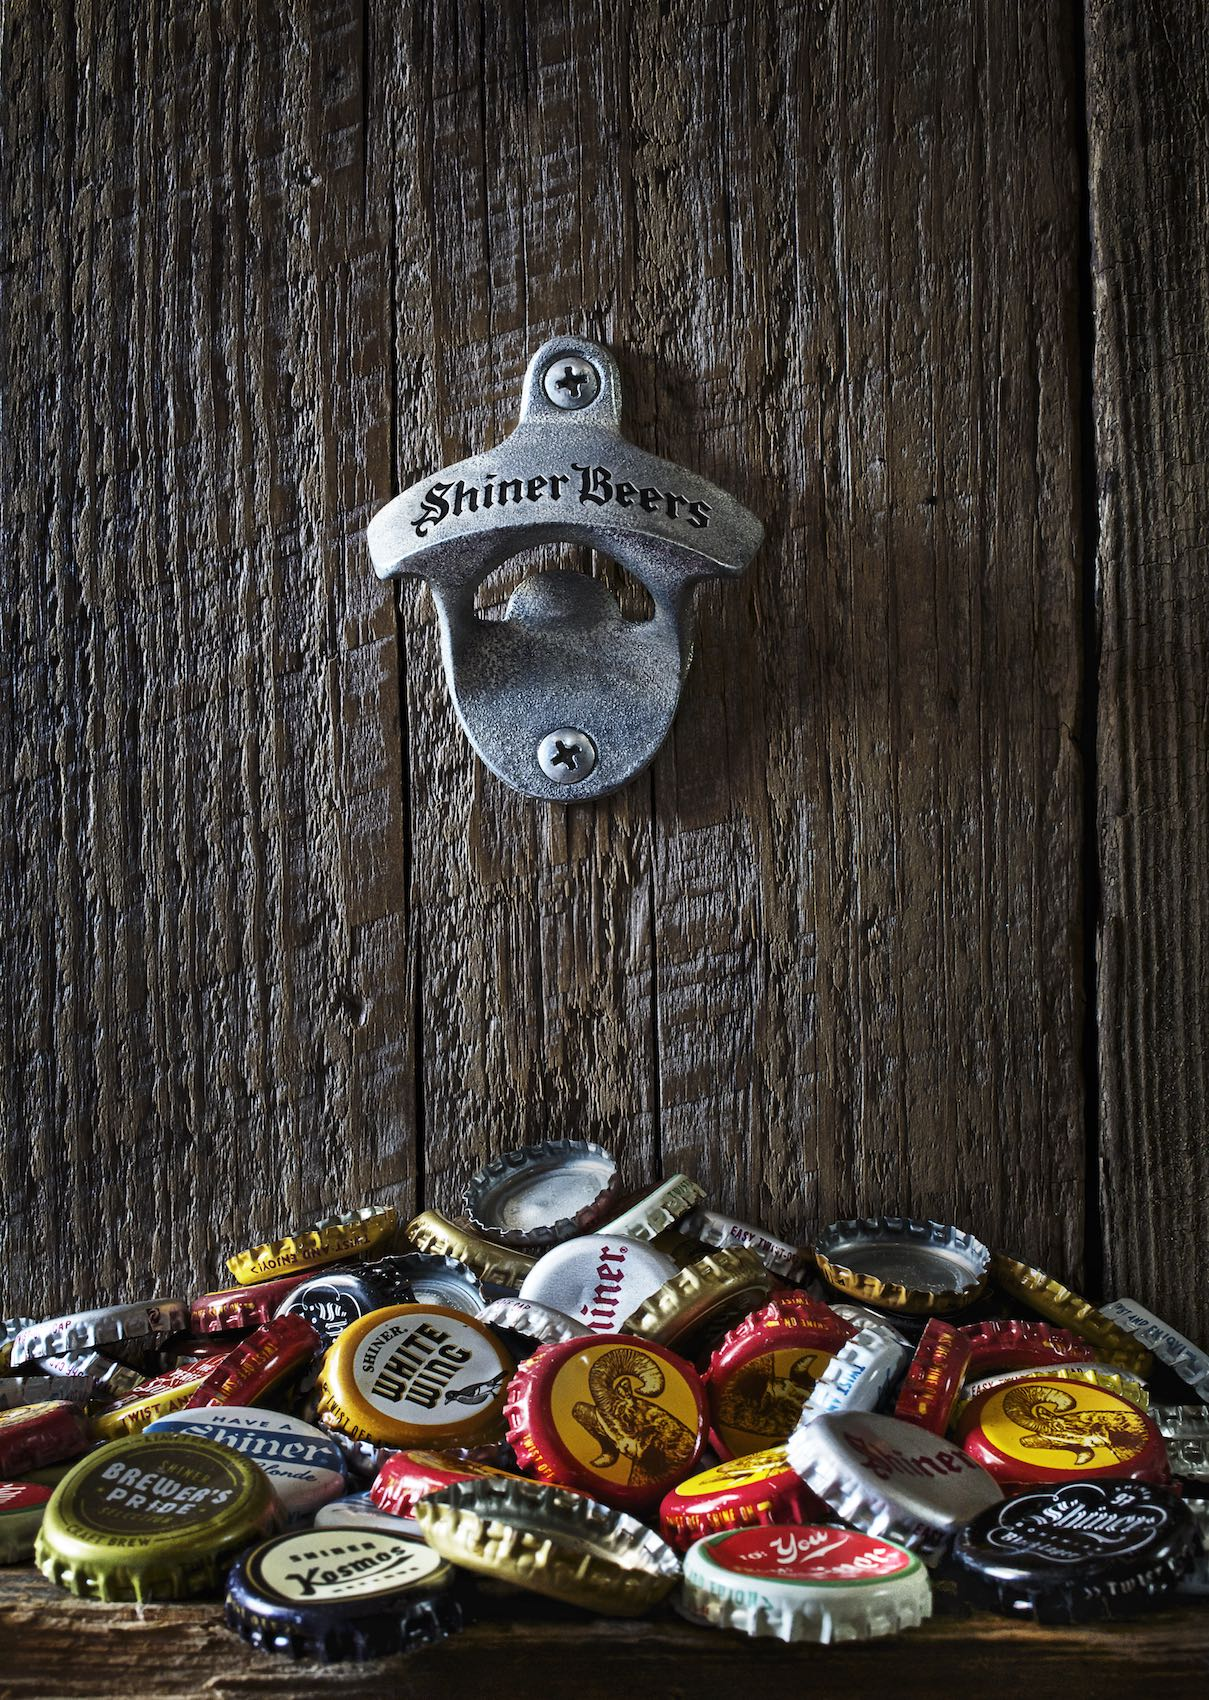 Jody Horton Photography - Shiner Beer Billboard with wood backdrop, bottle opener and variety of Shiner bottle caps.